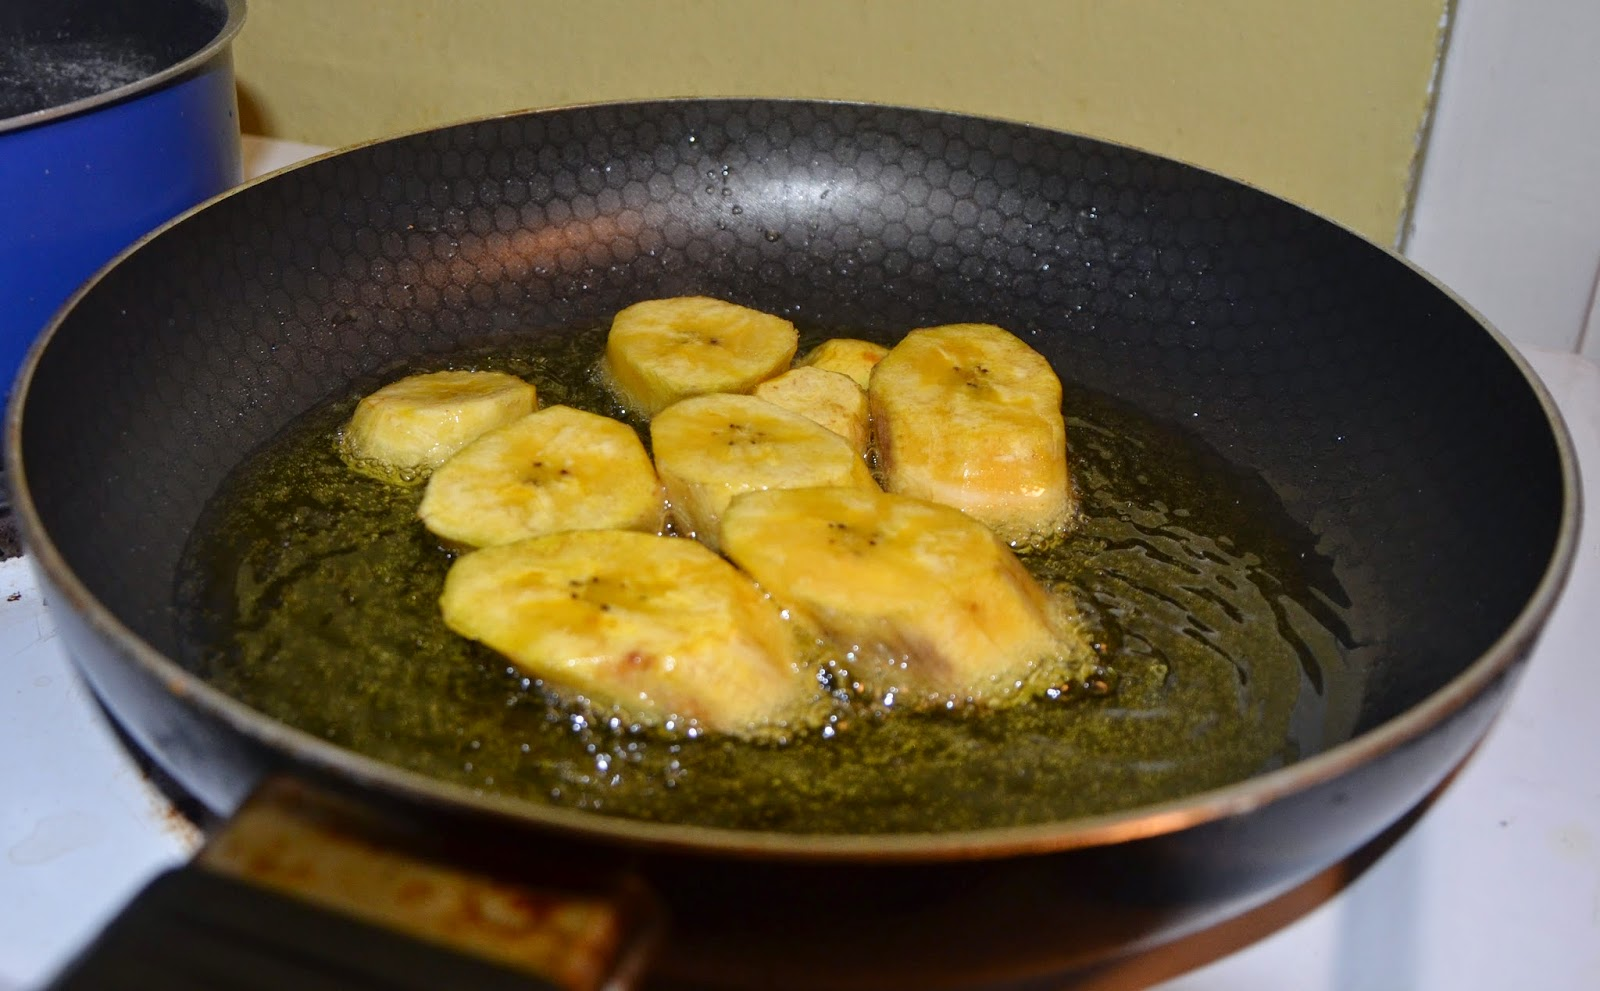 Inspired Cooking: Haitian Fried Green Plantains